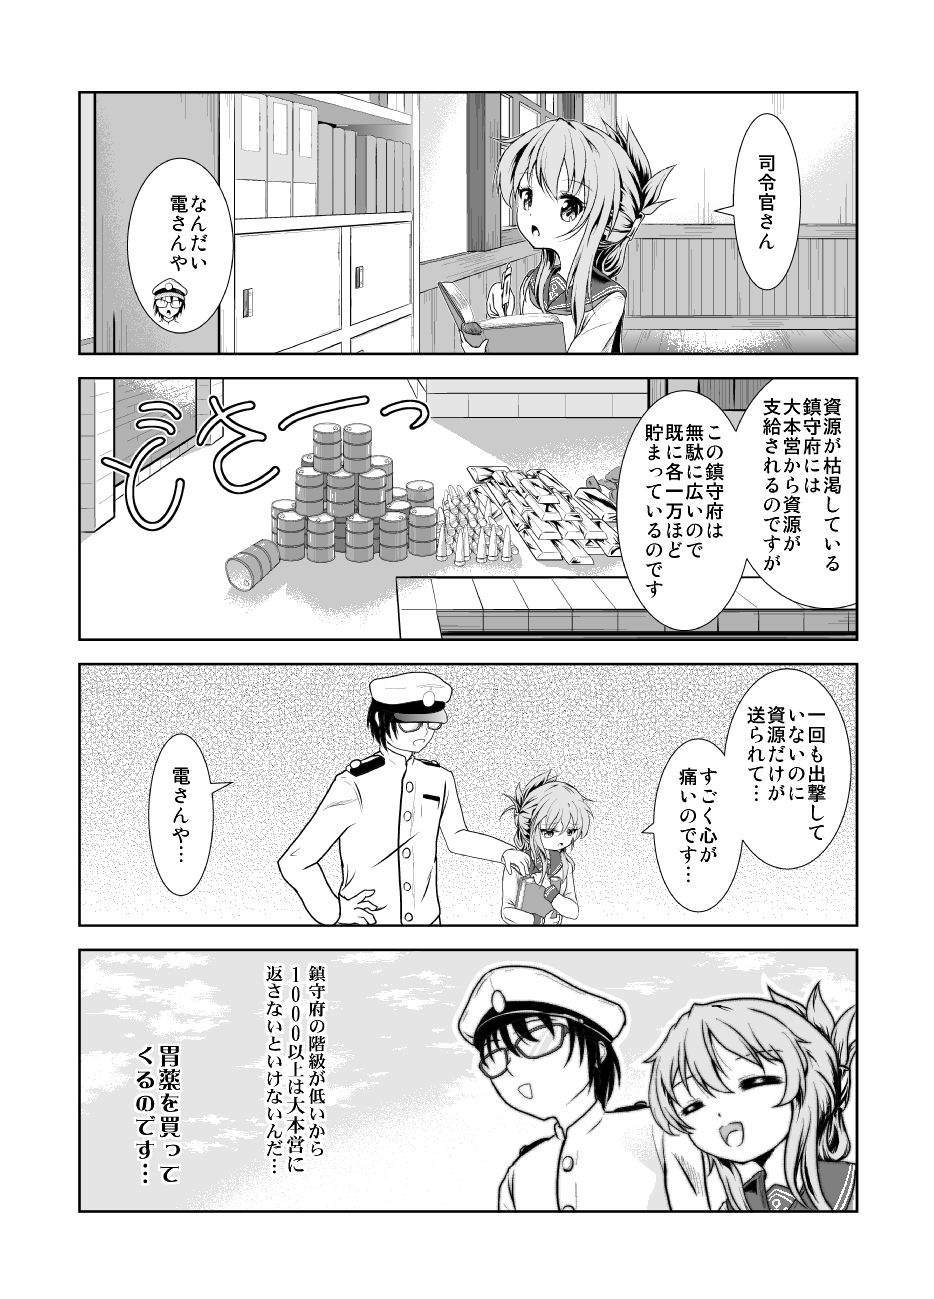 [同人]「EROBAKO2」(UNDER/SHAFT)